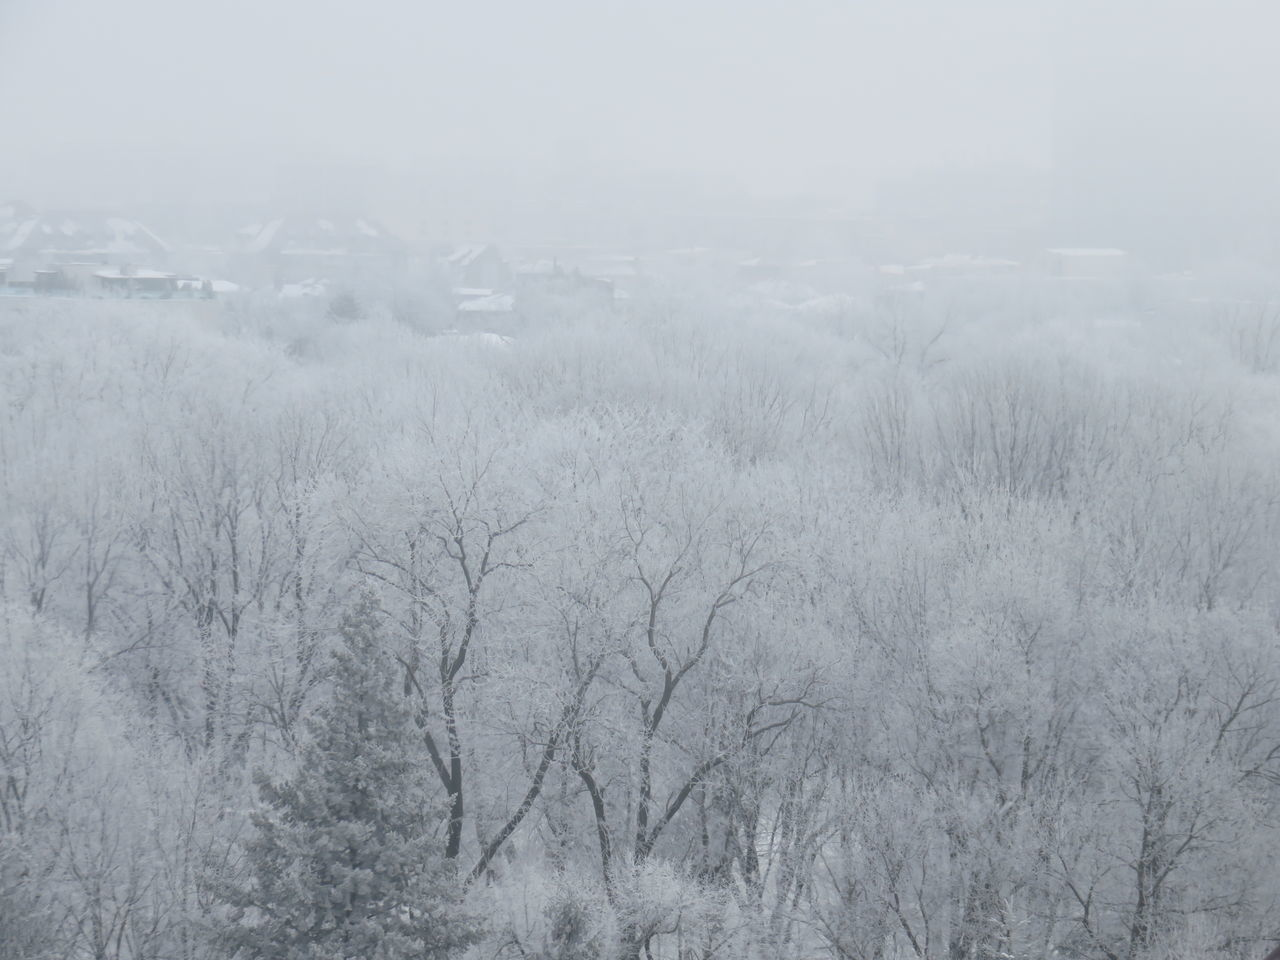 Beauty In Nature Cold Temperature Day Fog Landscape Nature No People Outdoors Scenics Sky Snow Snowing Tree Winter